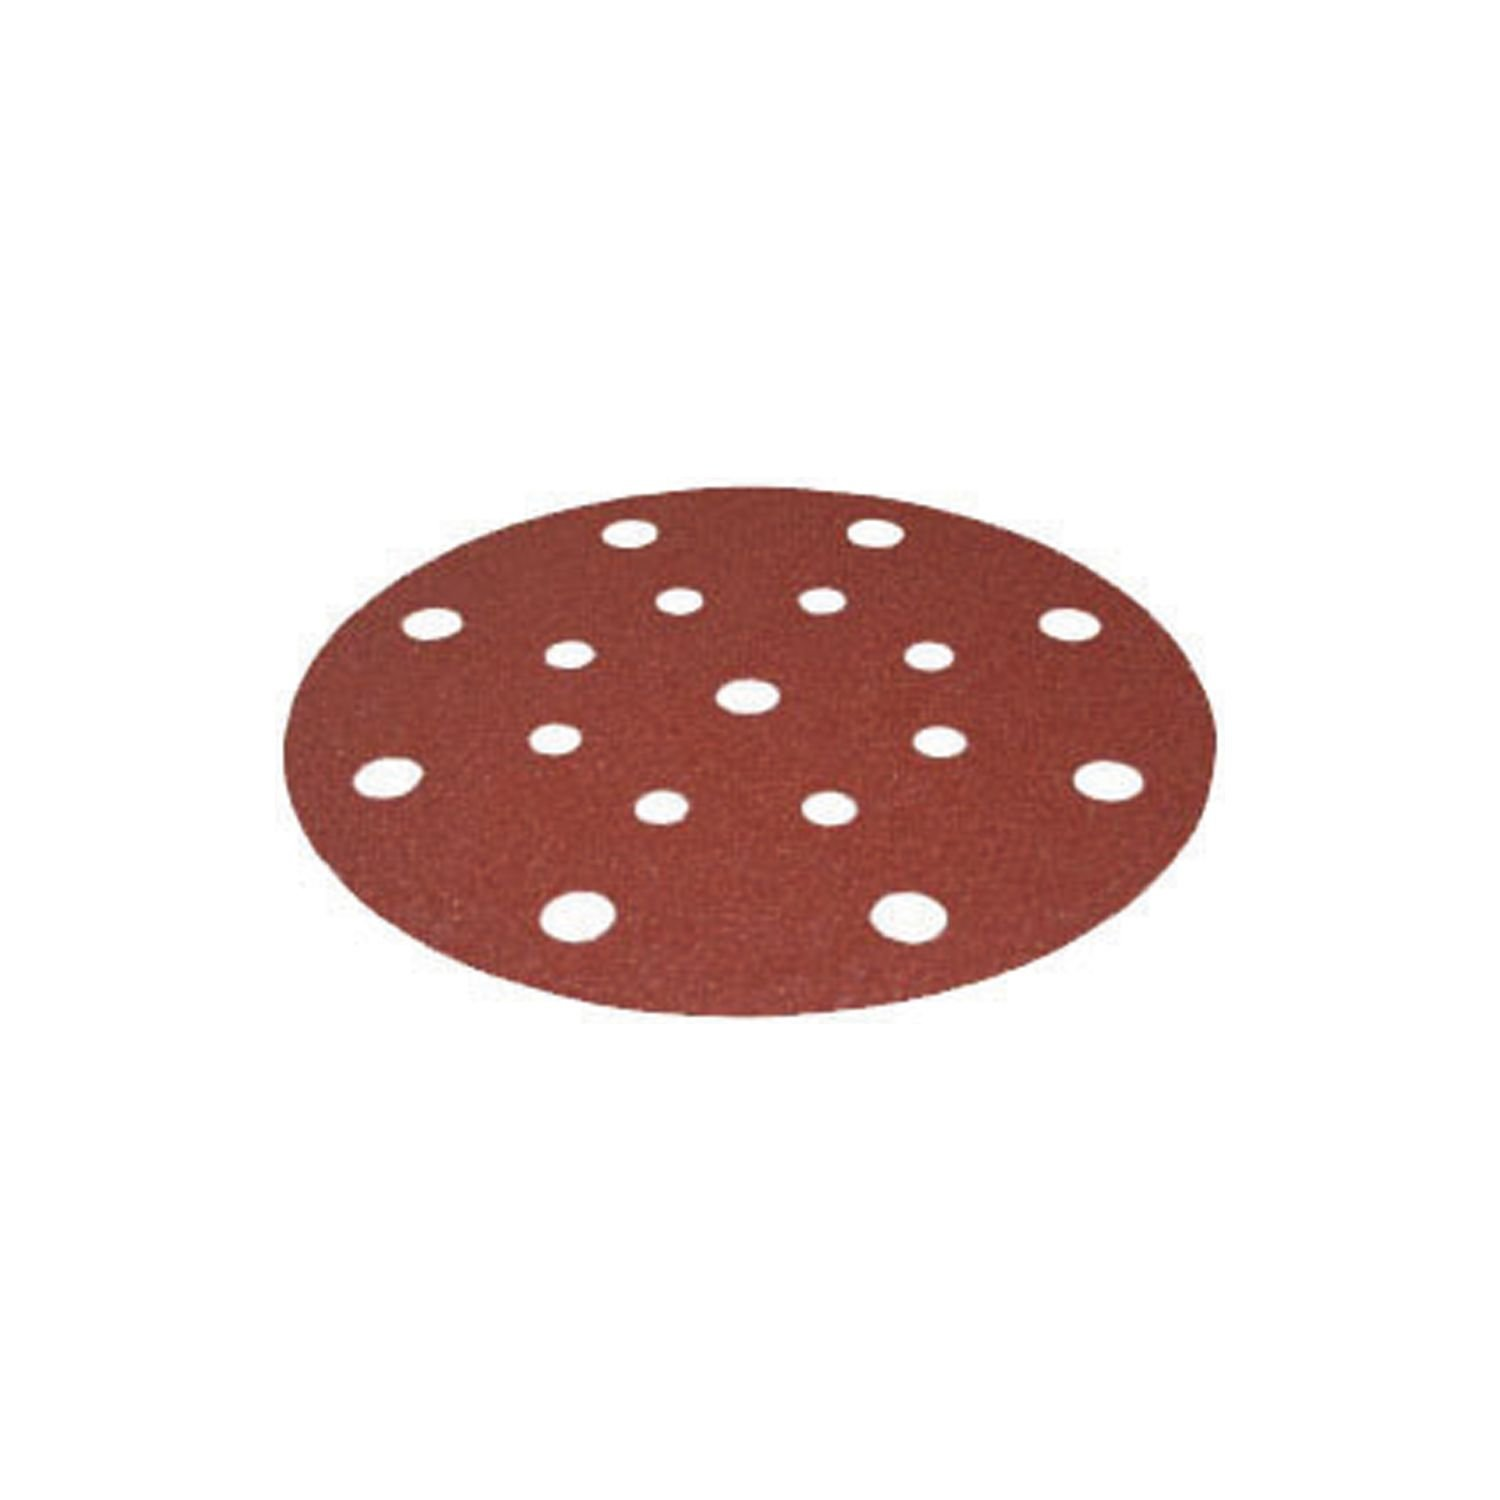 Festool 499124 P220 Grit Rubin 2 Abrasives for RO 150/ETS 150 Sander, 50-Pack